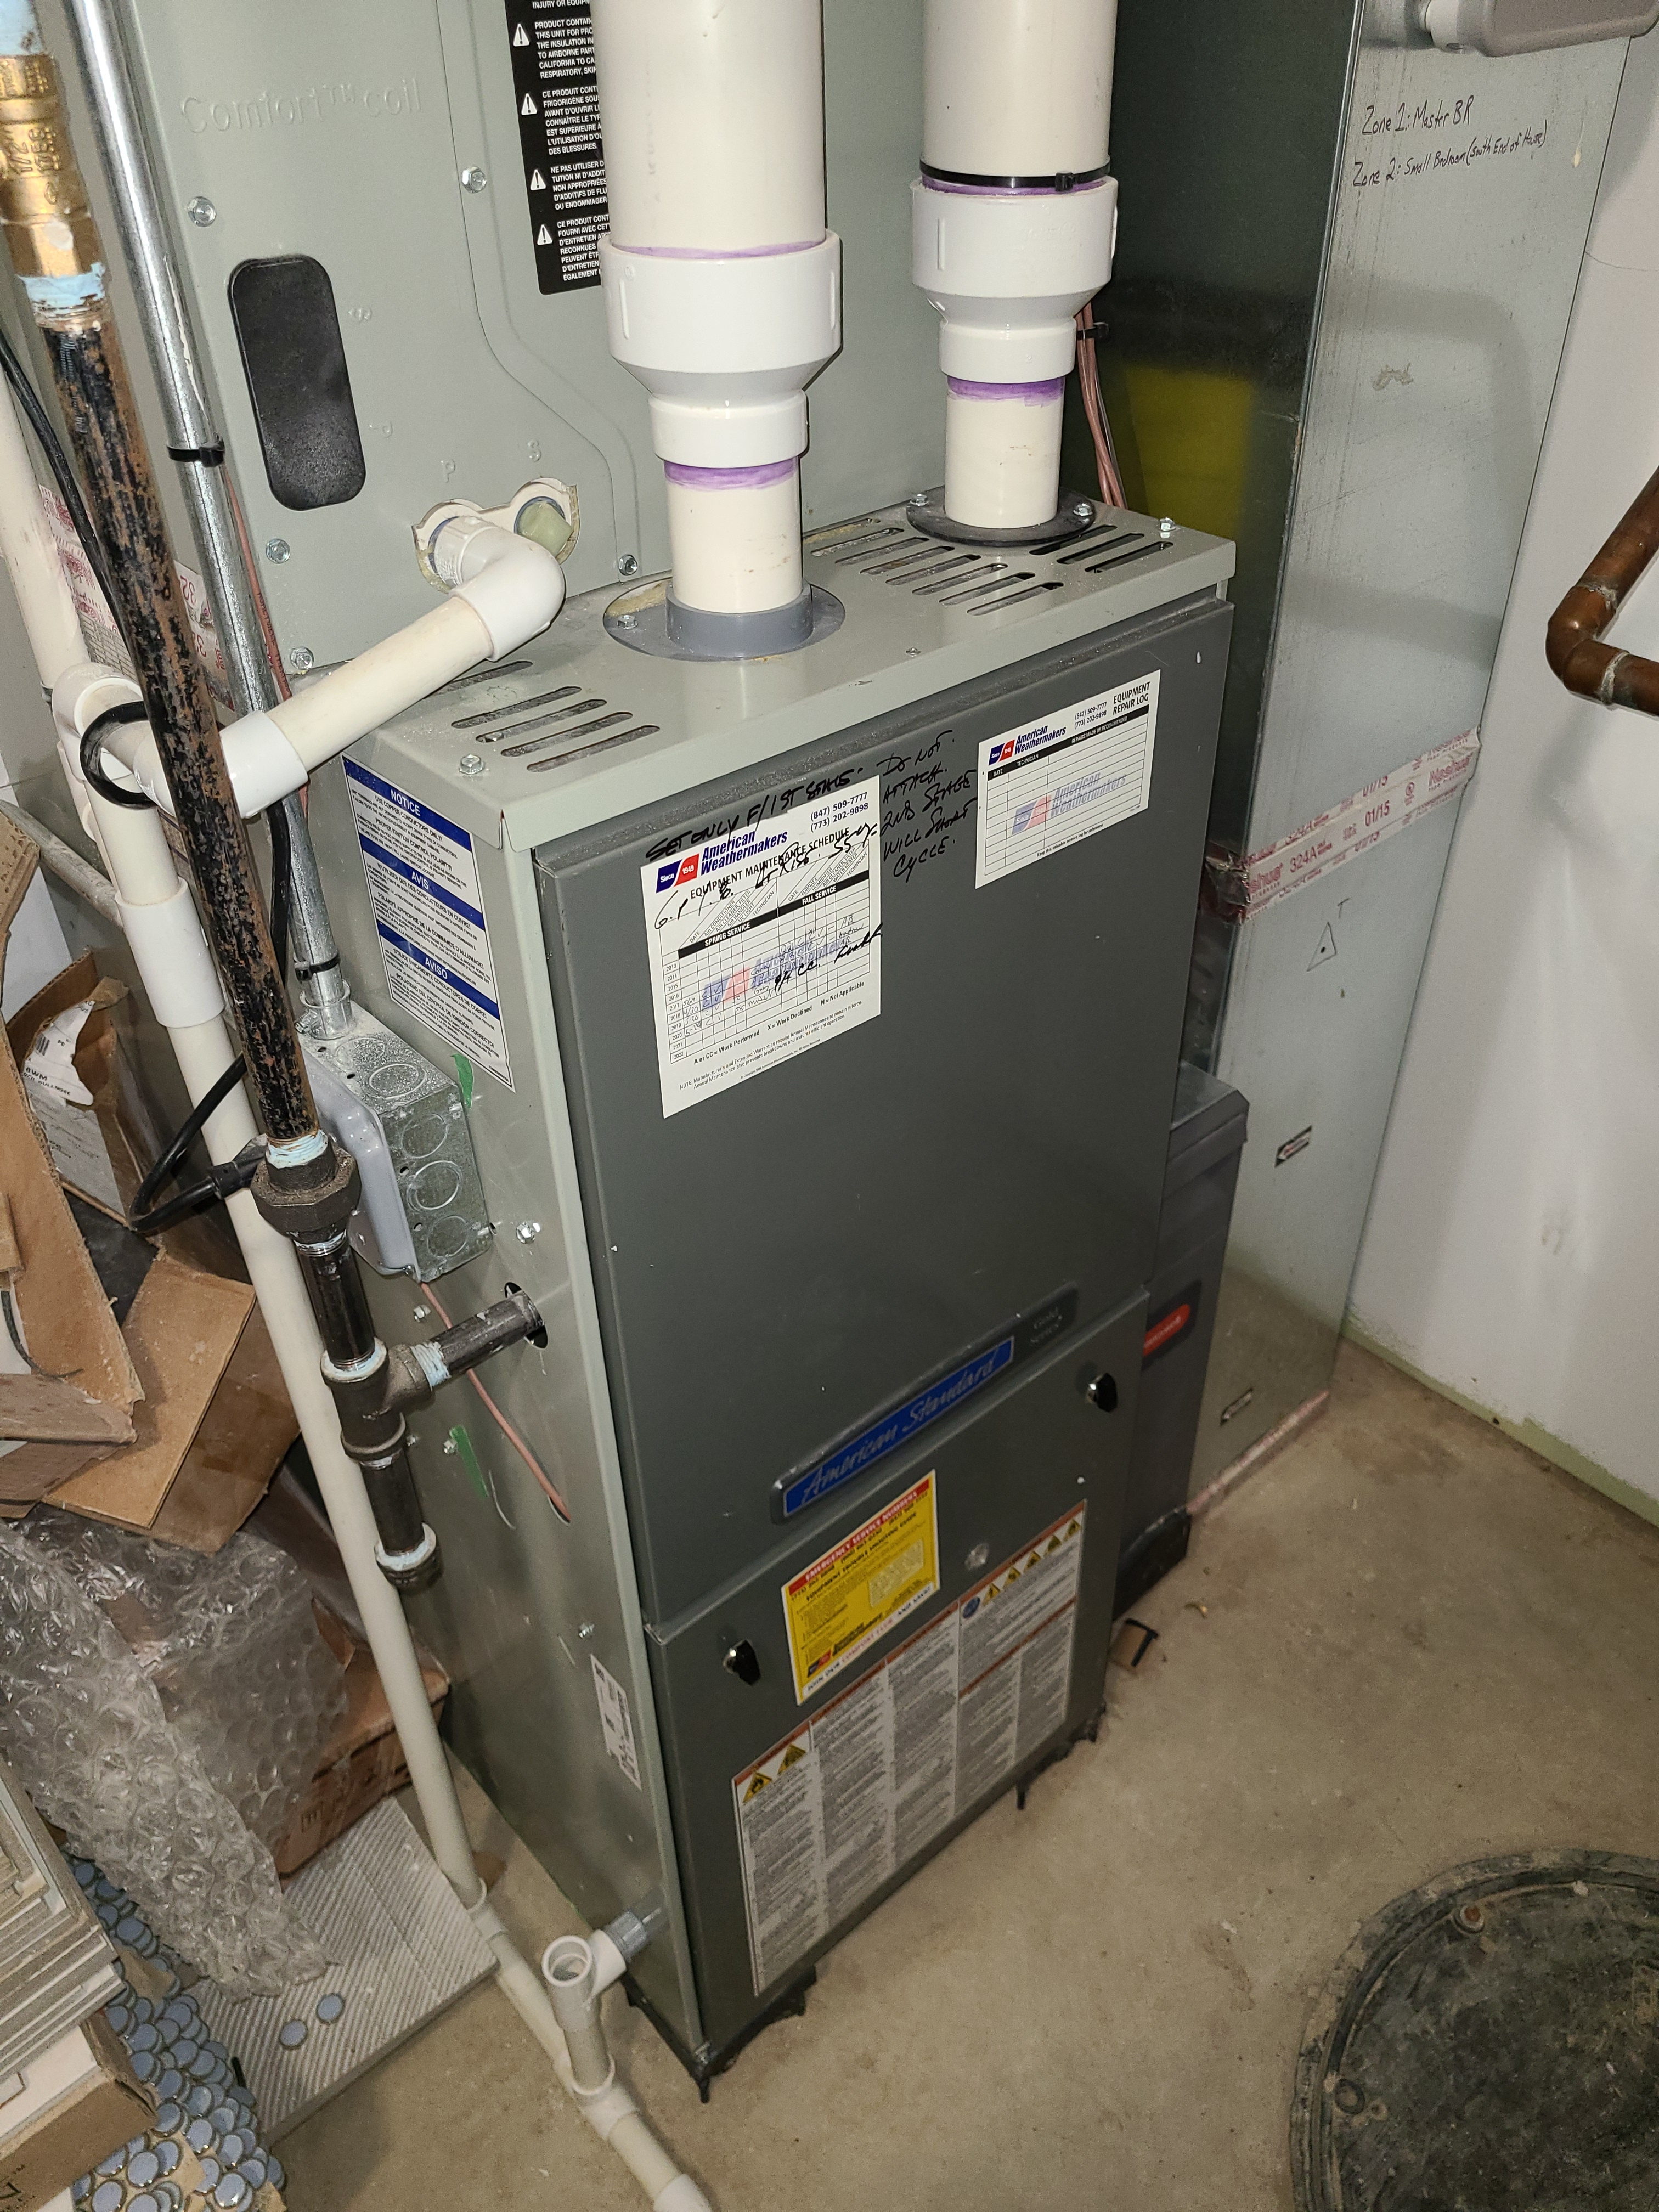 American Standard furnace fall clean and check. System tuned up and ready for winter.